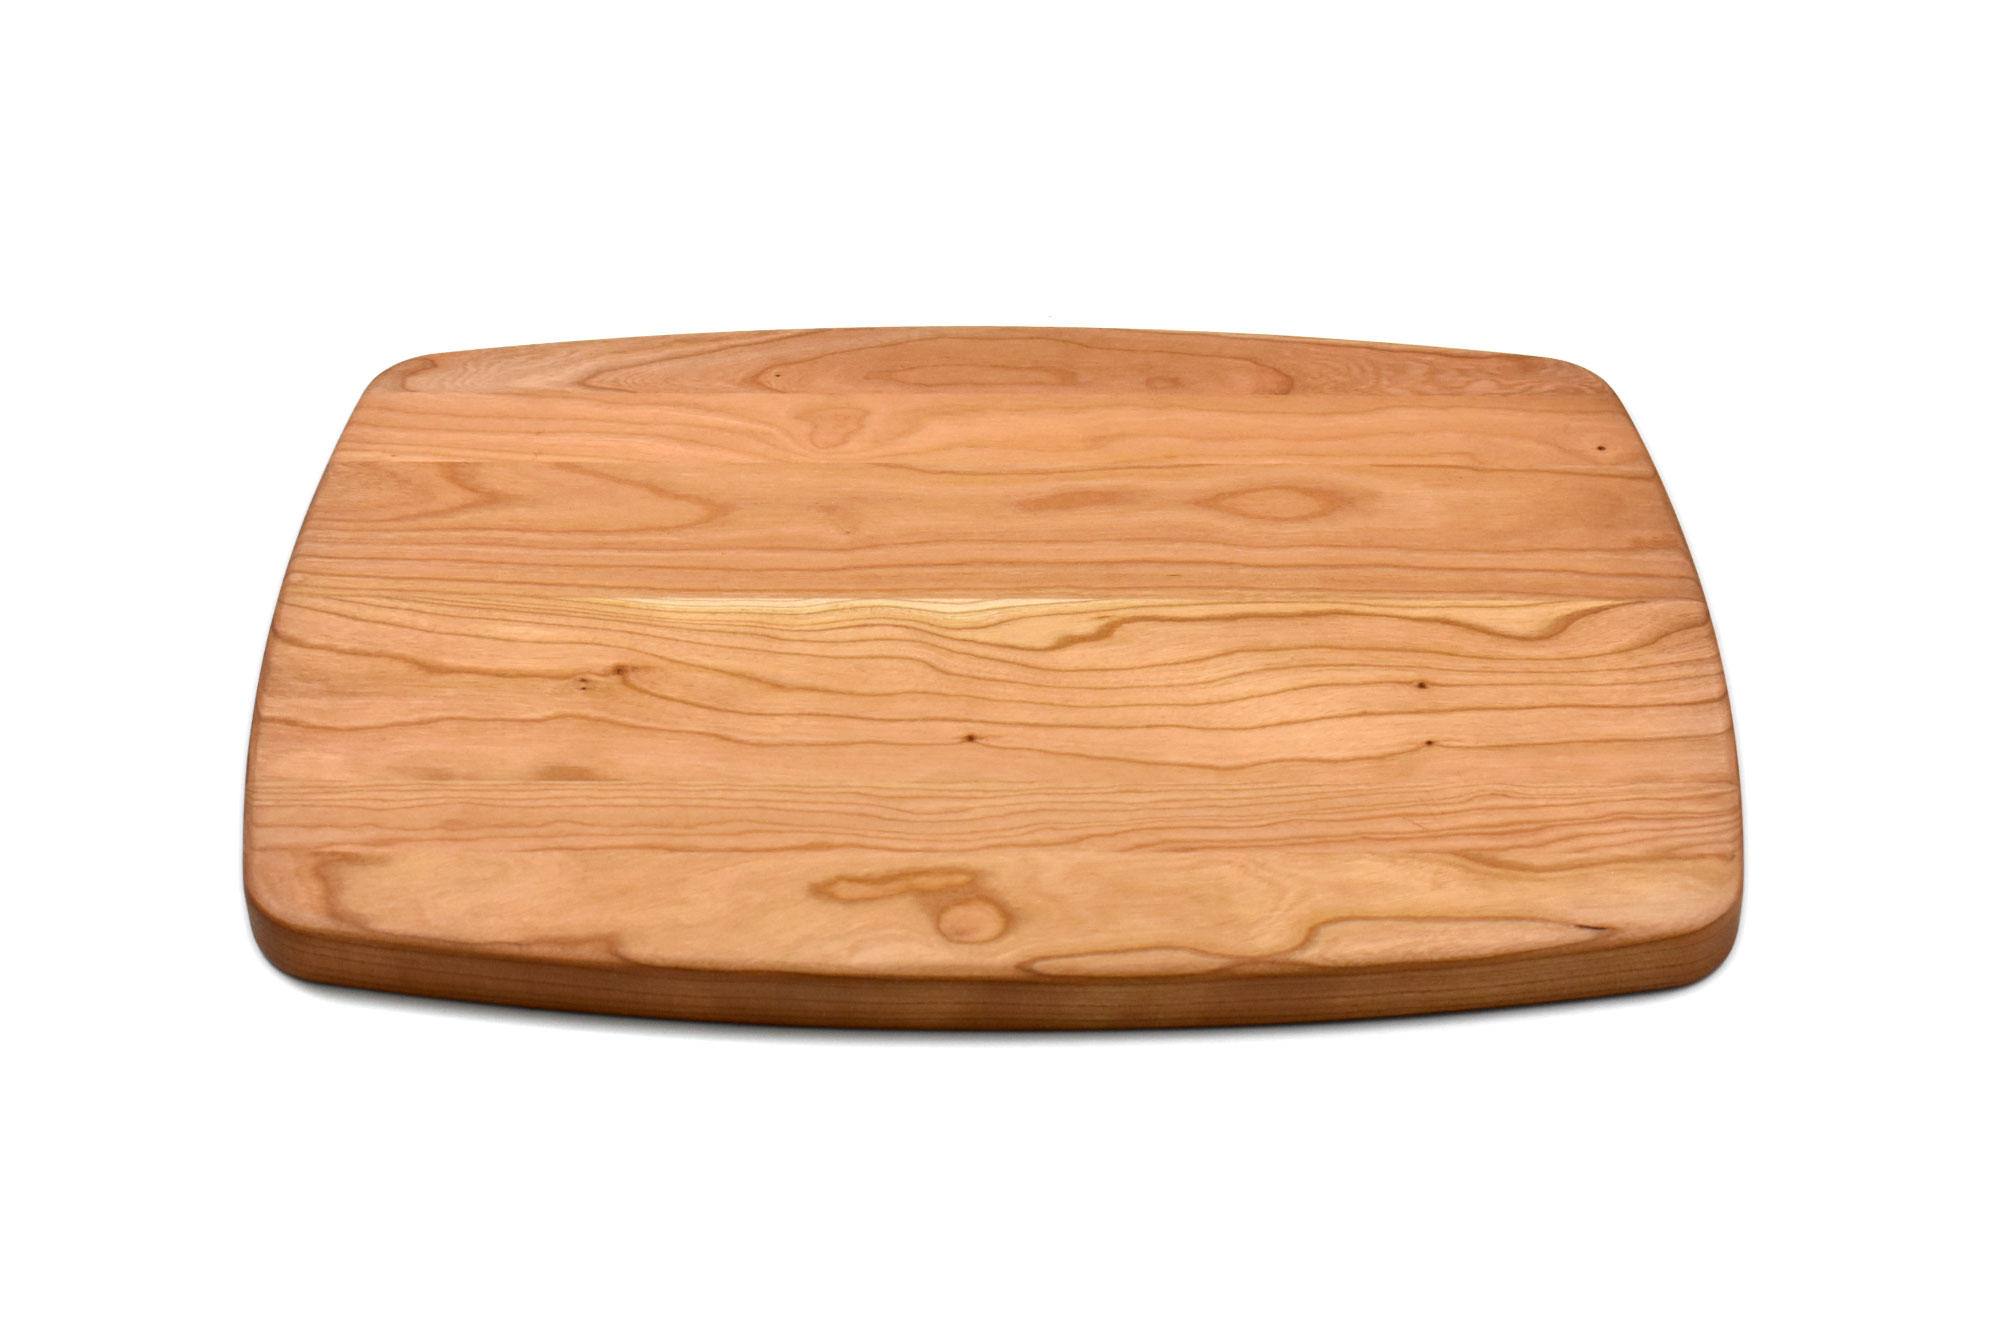 Cherry large rectangular curved cutting board with rounded corners